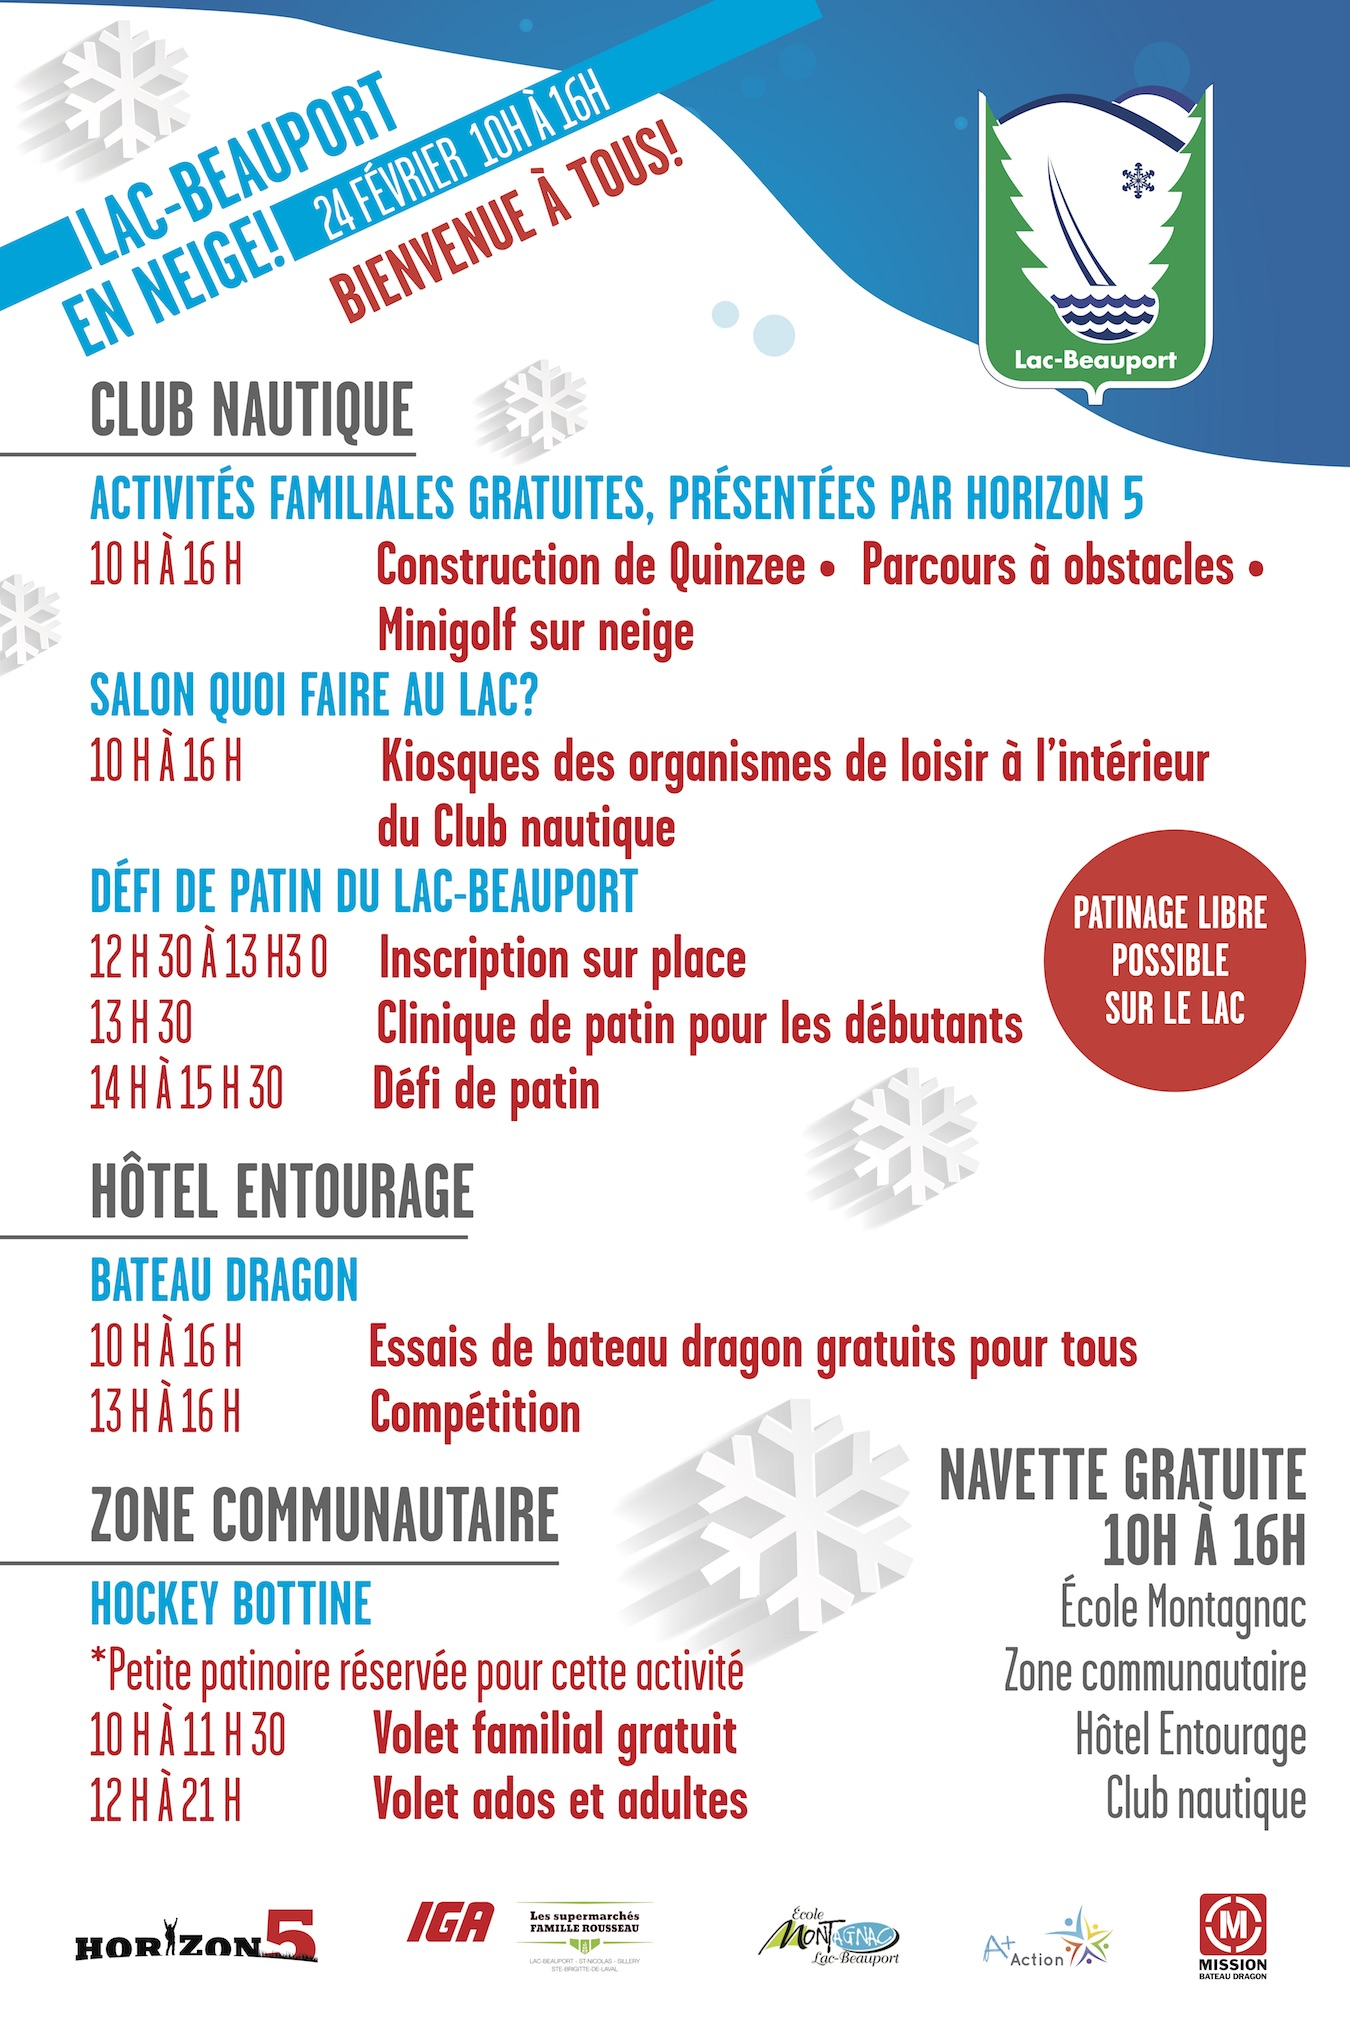 https://www.missiondragonboat.com/wp-content/uploads/2018/02/programmation_lac_beauport_en_neige_2018-1.jpg